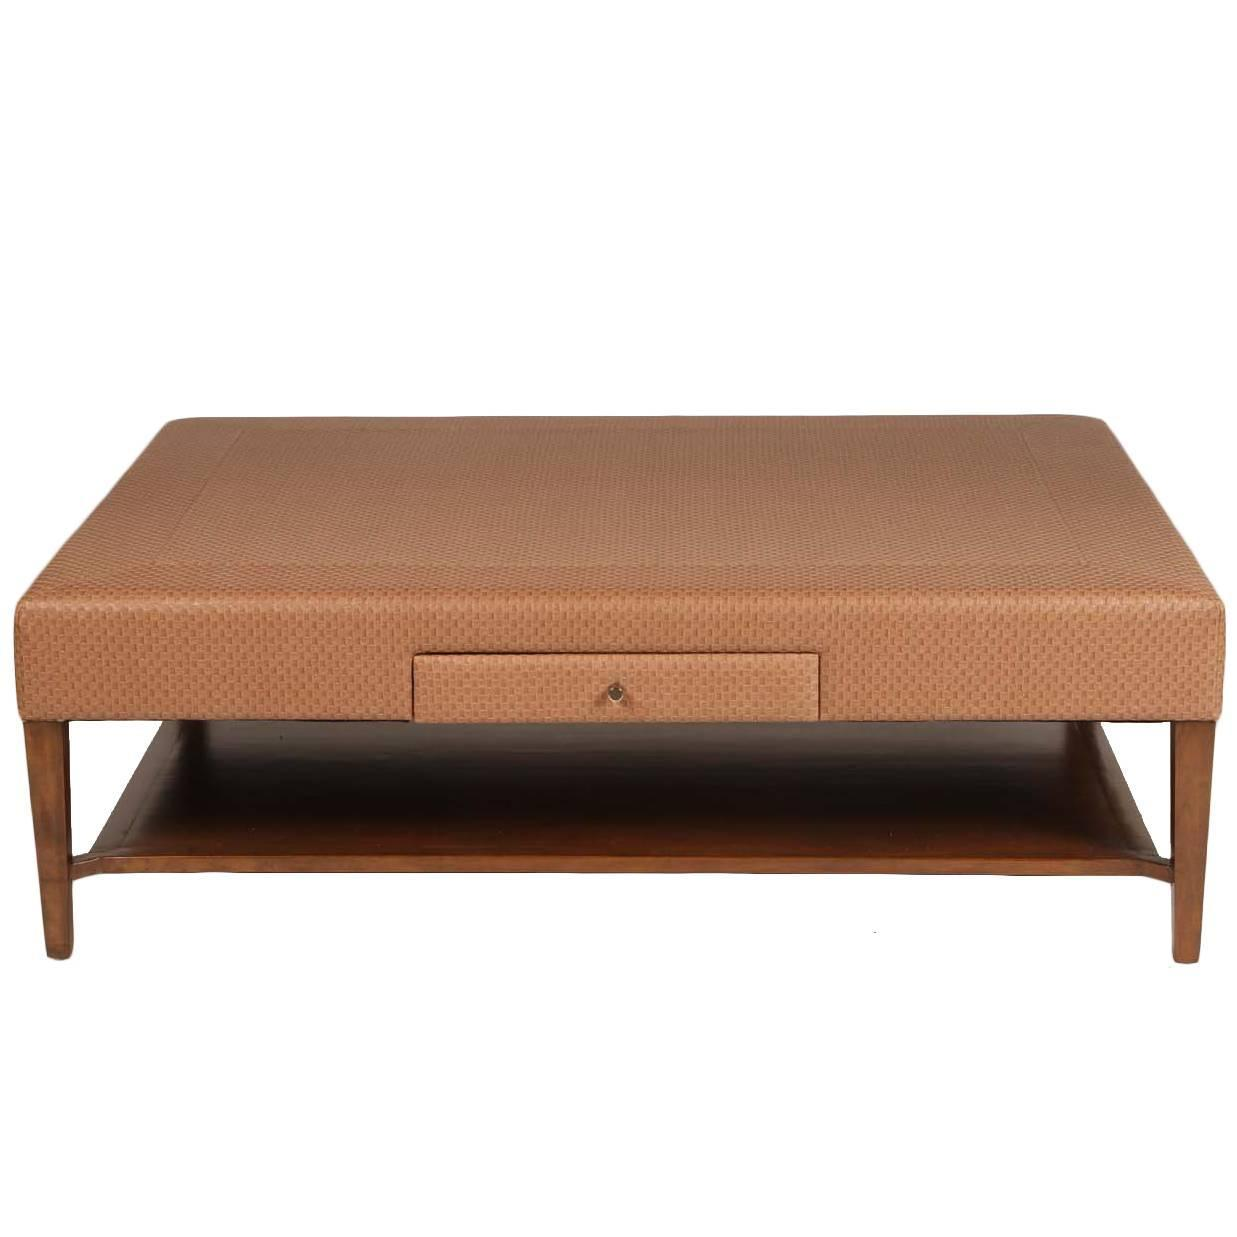 Padded Coffee Tables Solid Wood Espresso Leather Upholstered 2 Tier Coffee Morton Upholstered